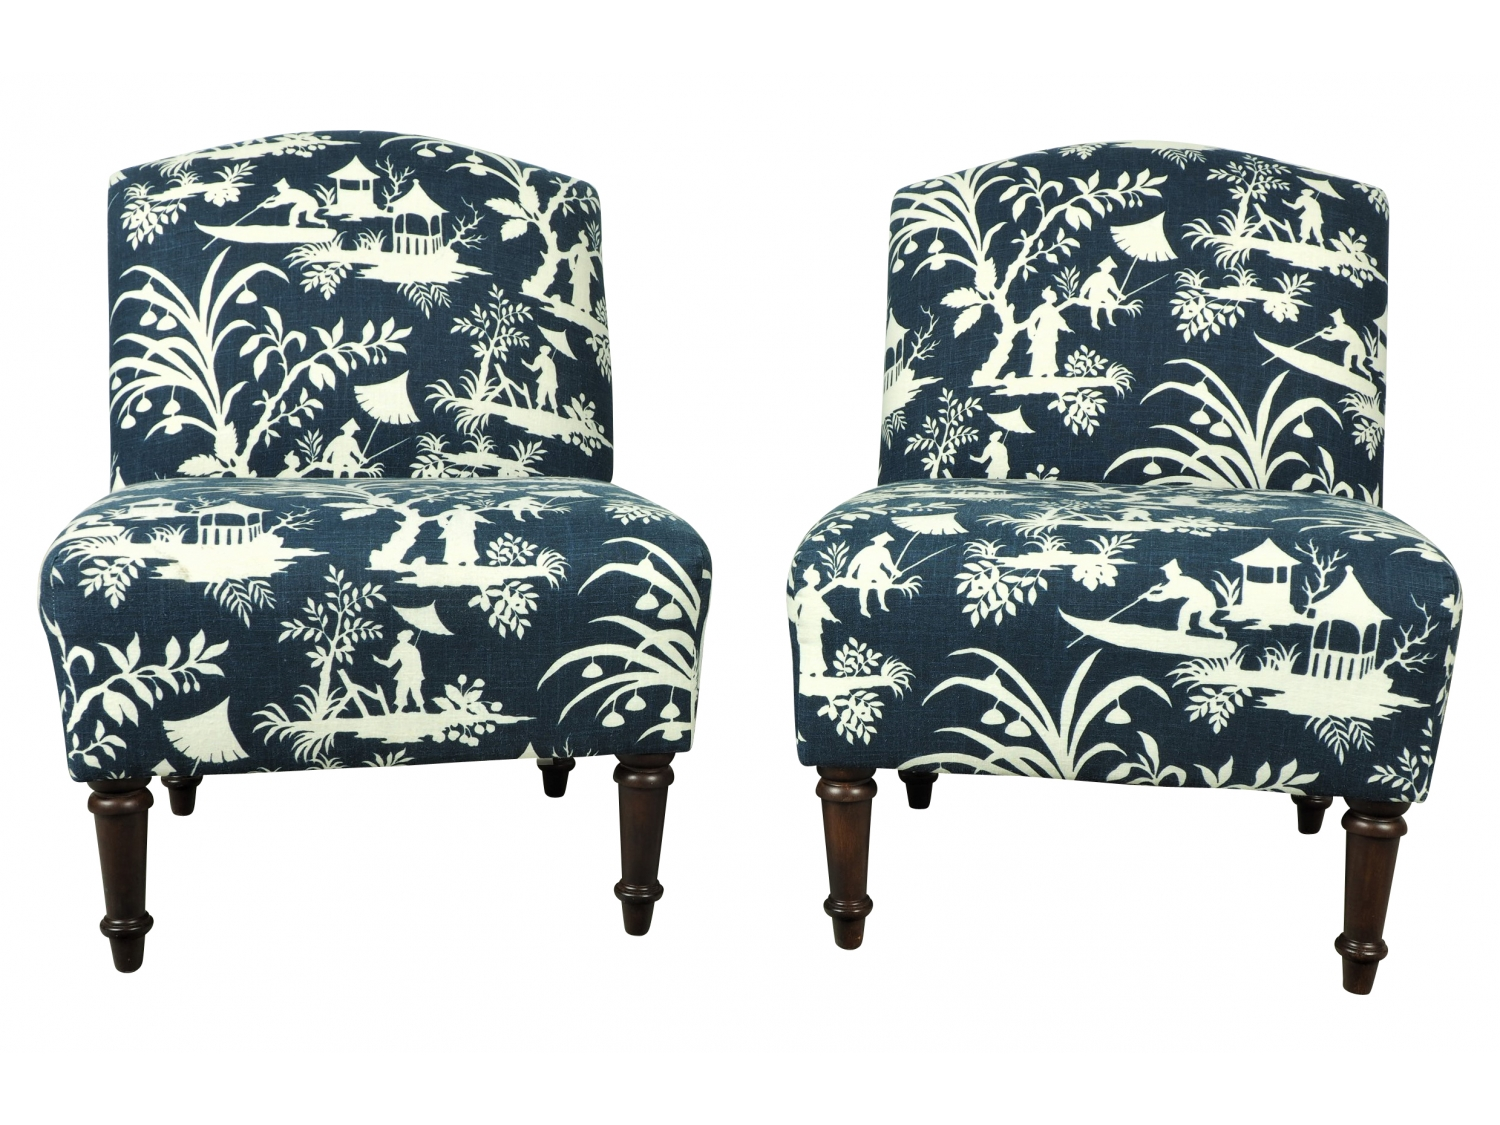 Toile Chair Pair Upholstered Toile Chairs By Skyline Furniture Black